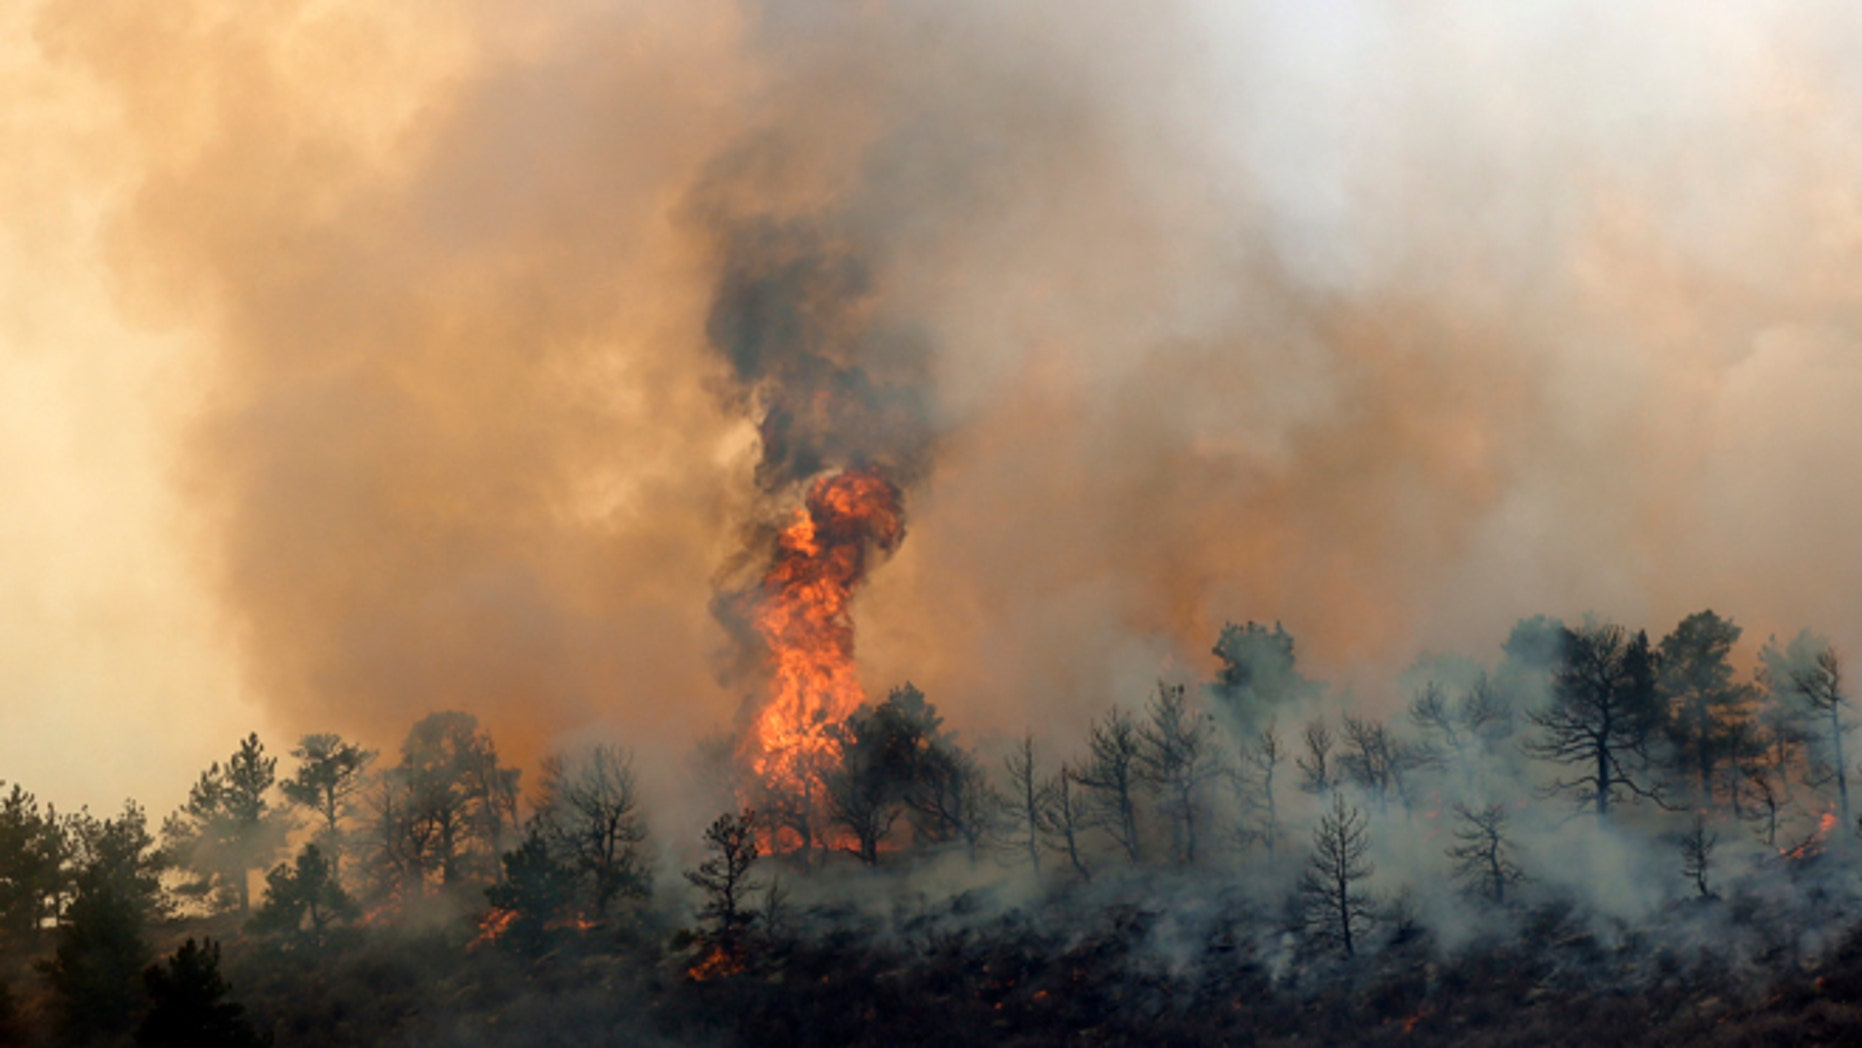 March 15, 2013: A wildfire burns out of control at Horsetooth Reservoir west of Fort Collins, Colo.